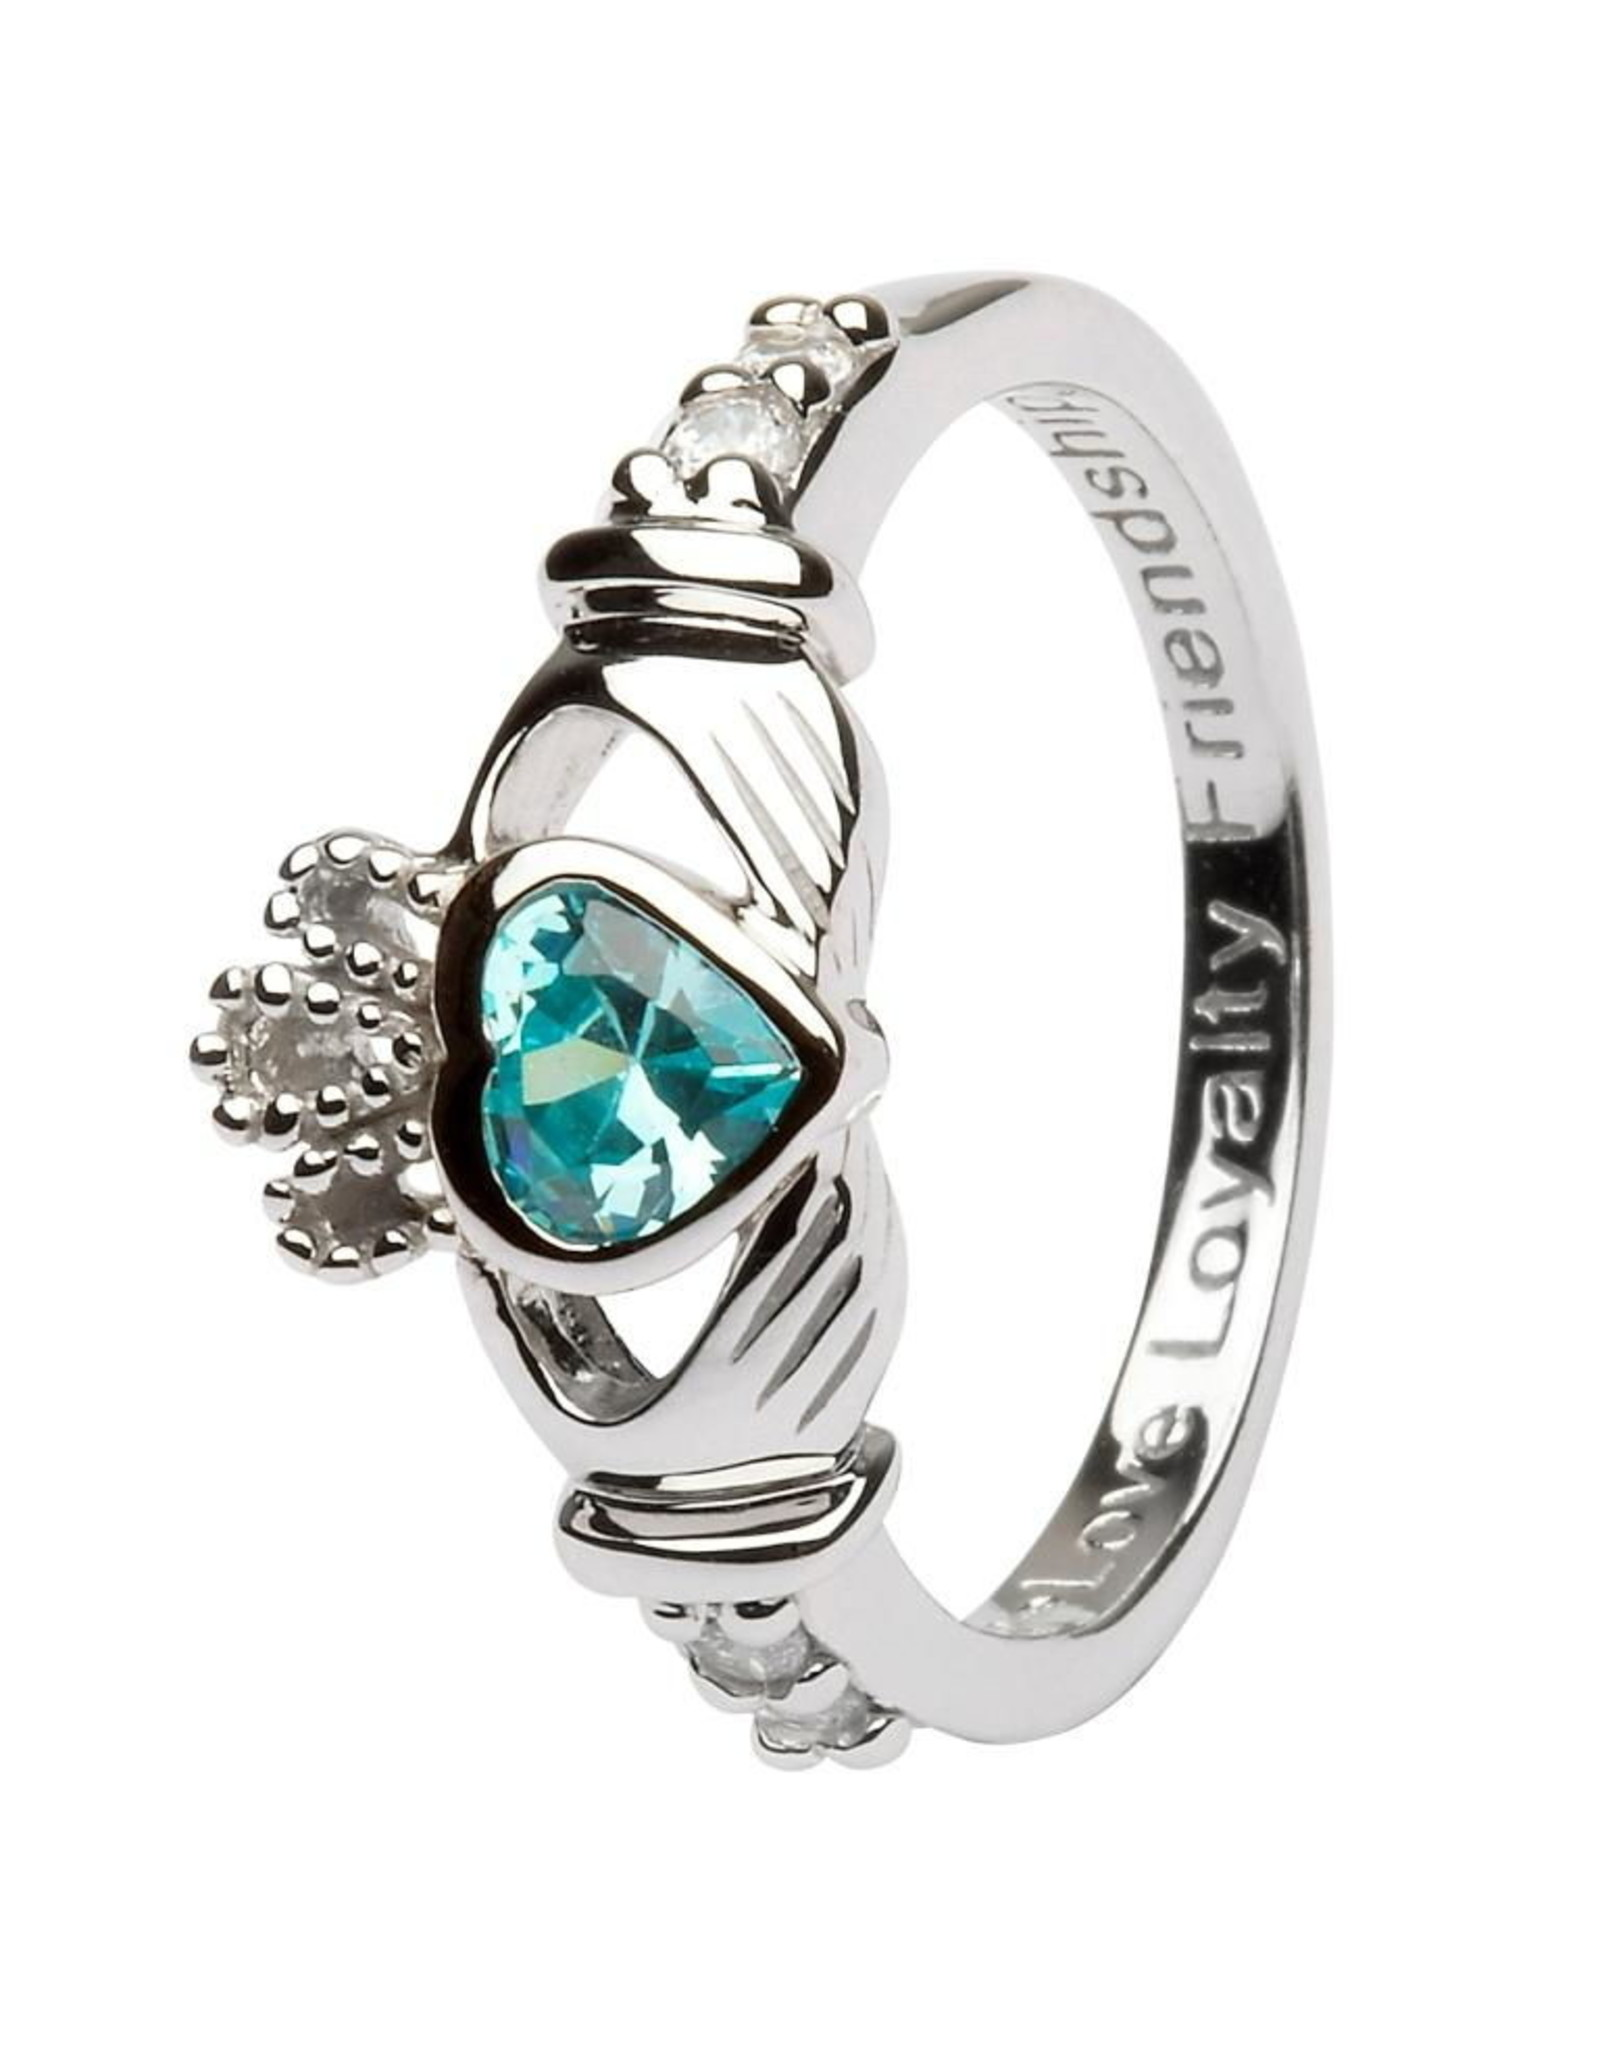 Shanore March Claddagh Birthstone Ring